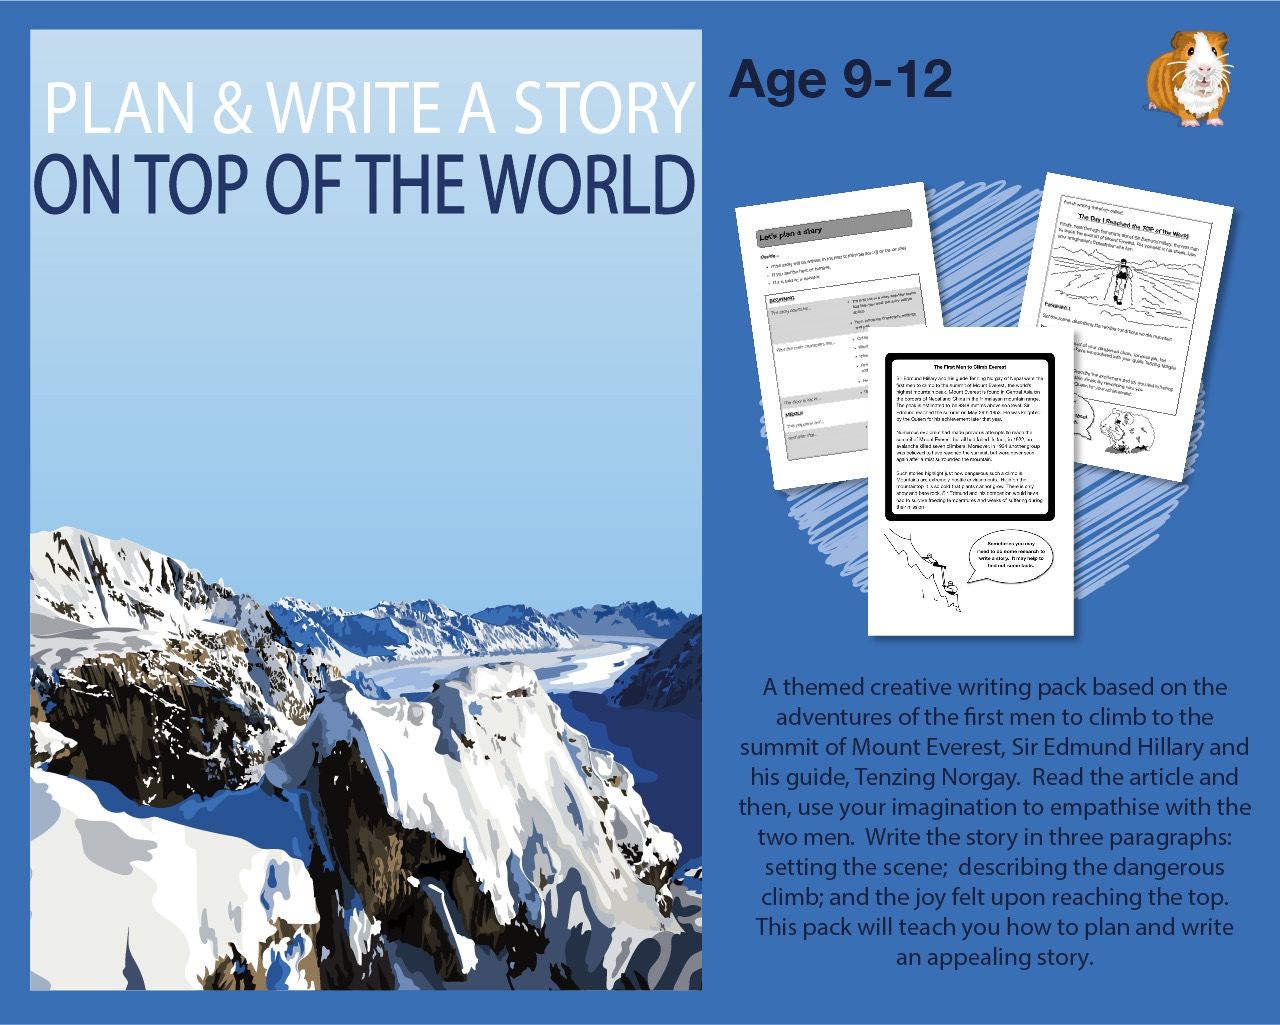 Plan And Write A Story About The First Men To Climb Everest (9-13 years)